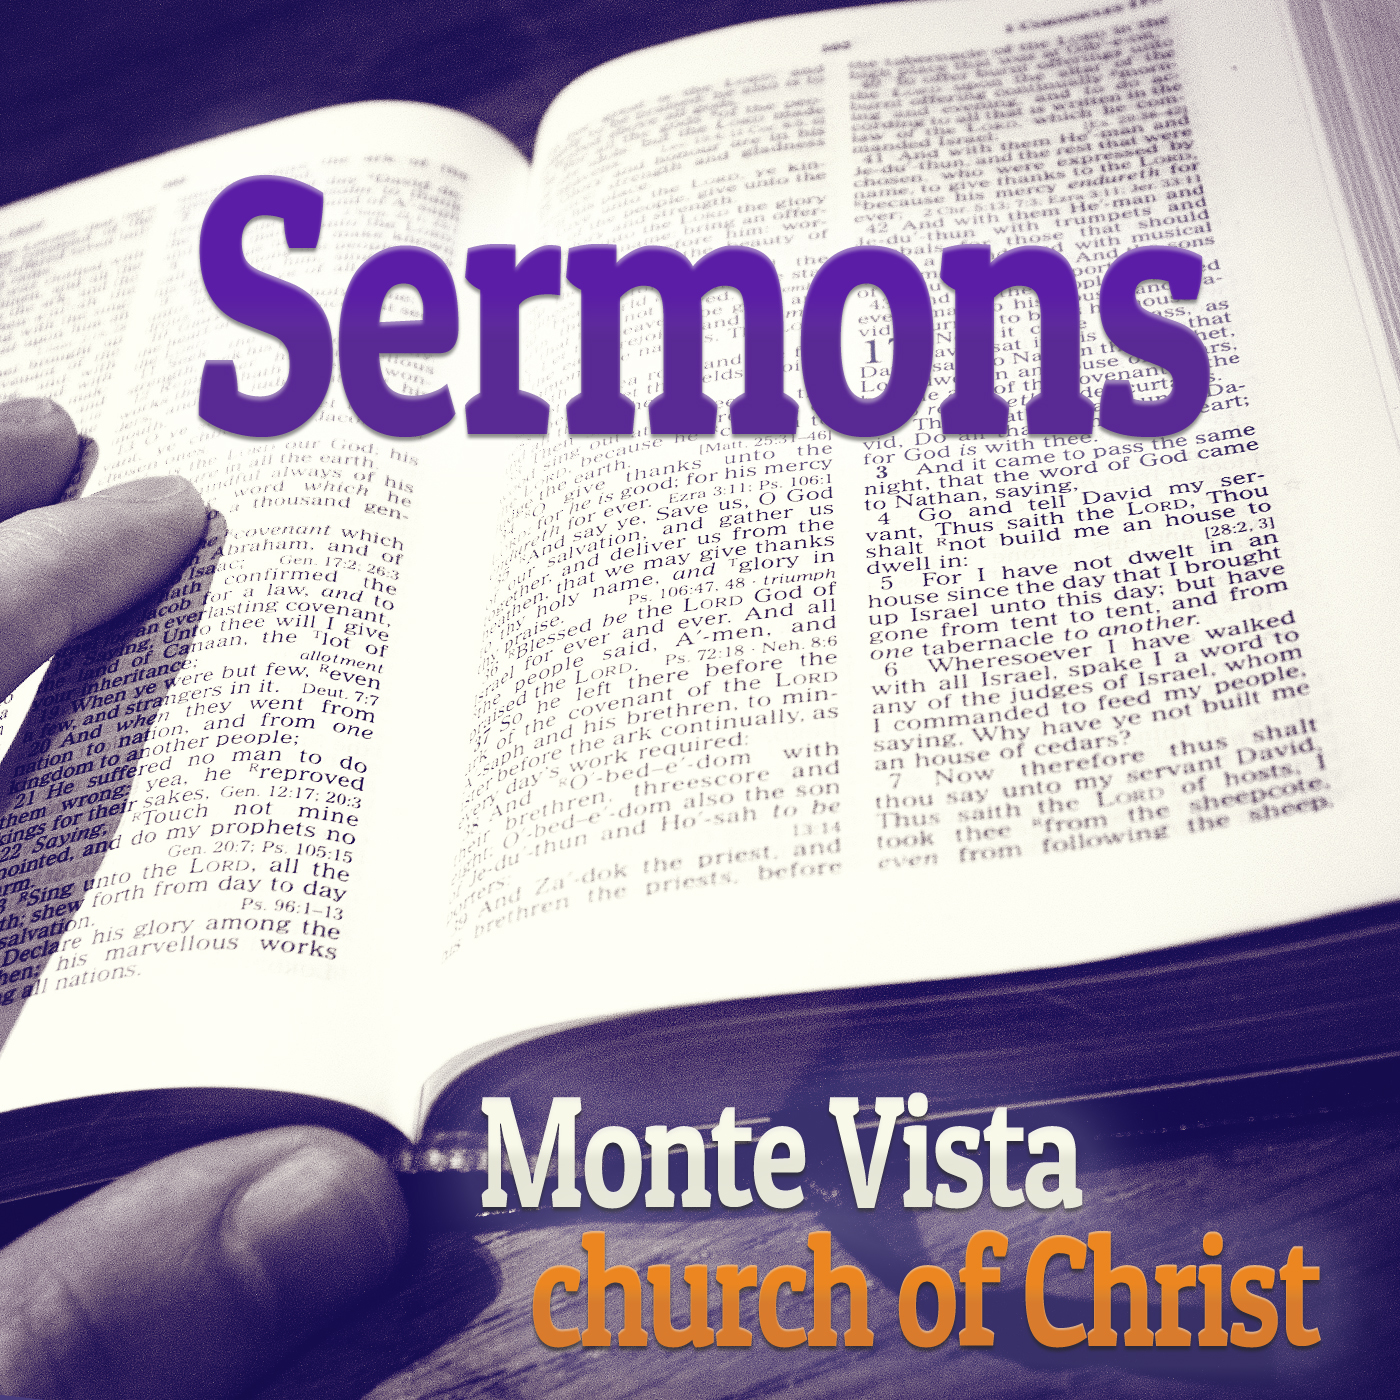 Sermons by the Monte Vista church of Christ